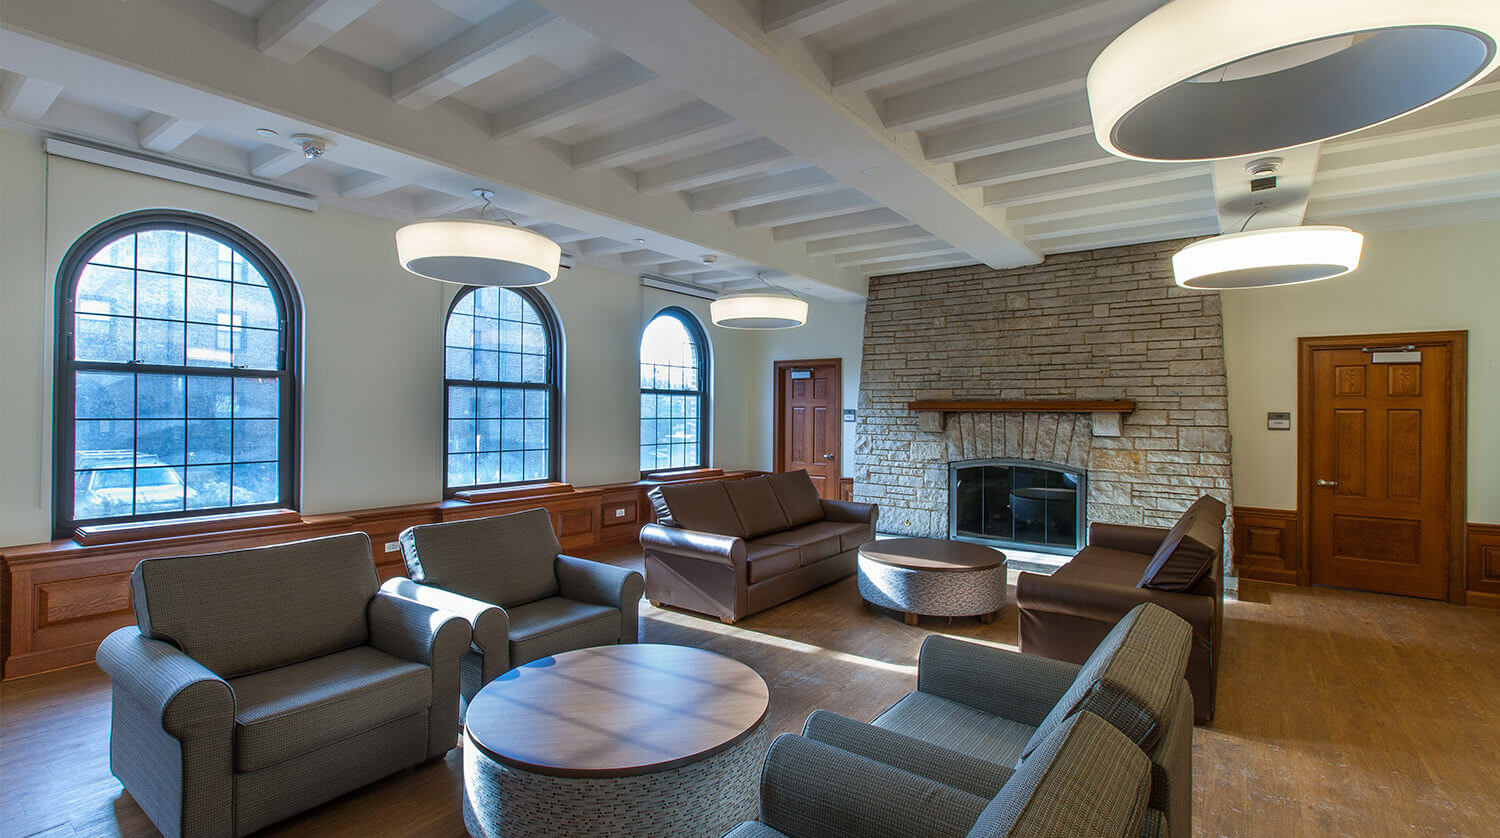 Northwestern University – Goodrich Hall Renovation 2